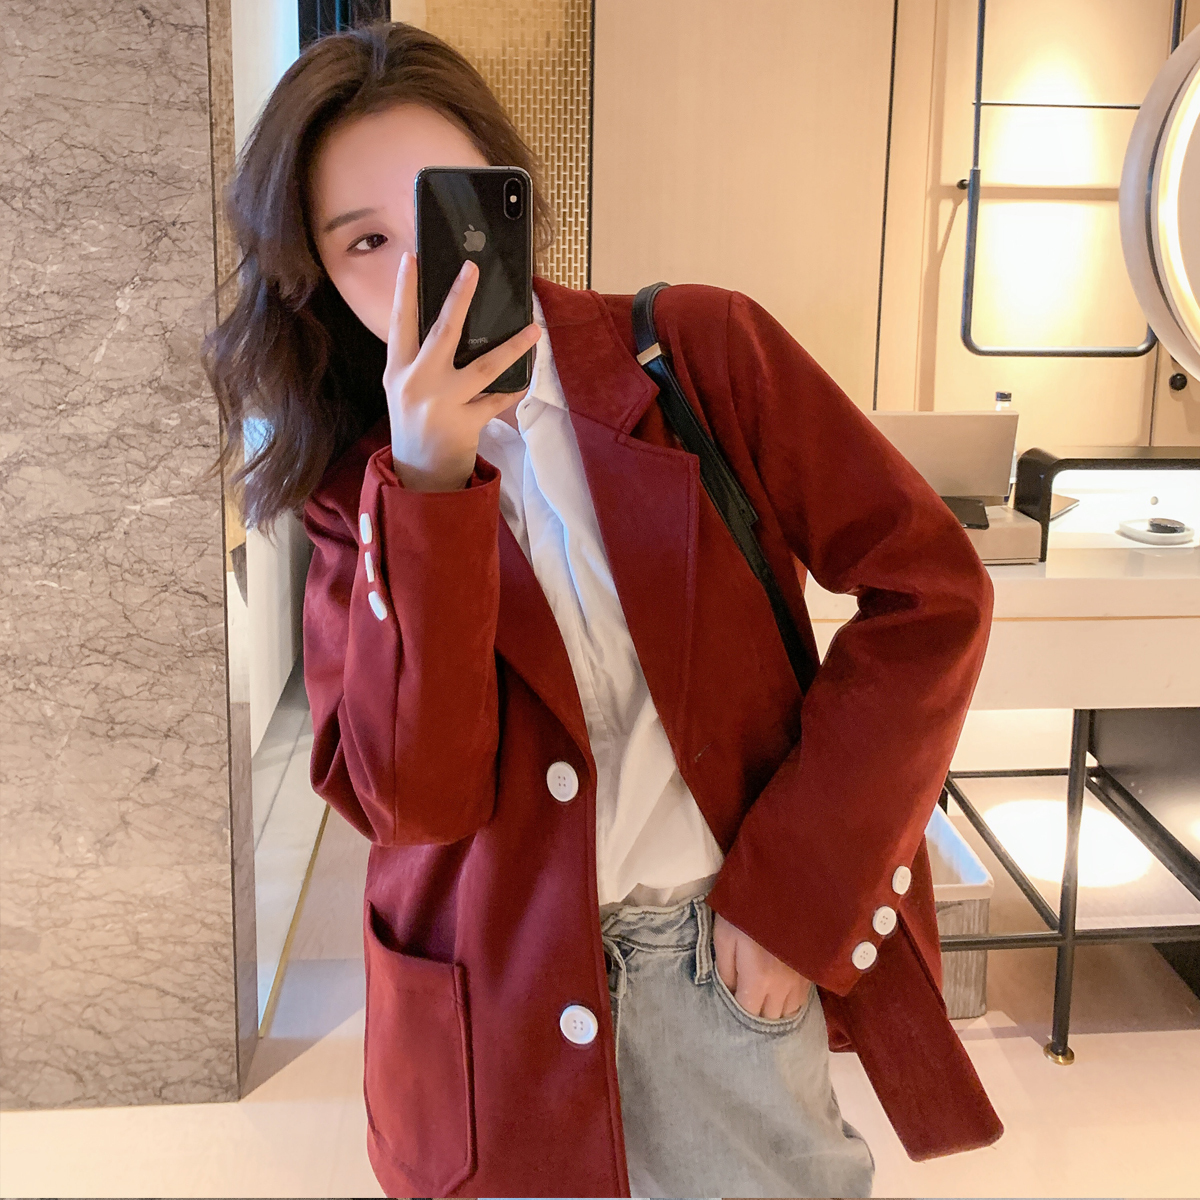 2020 Spring And Autumn New Youth Popular Solid Color Single-breasted Ladies Suit Fashion Business Casual Jacket Coat Red / Blue